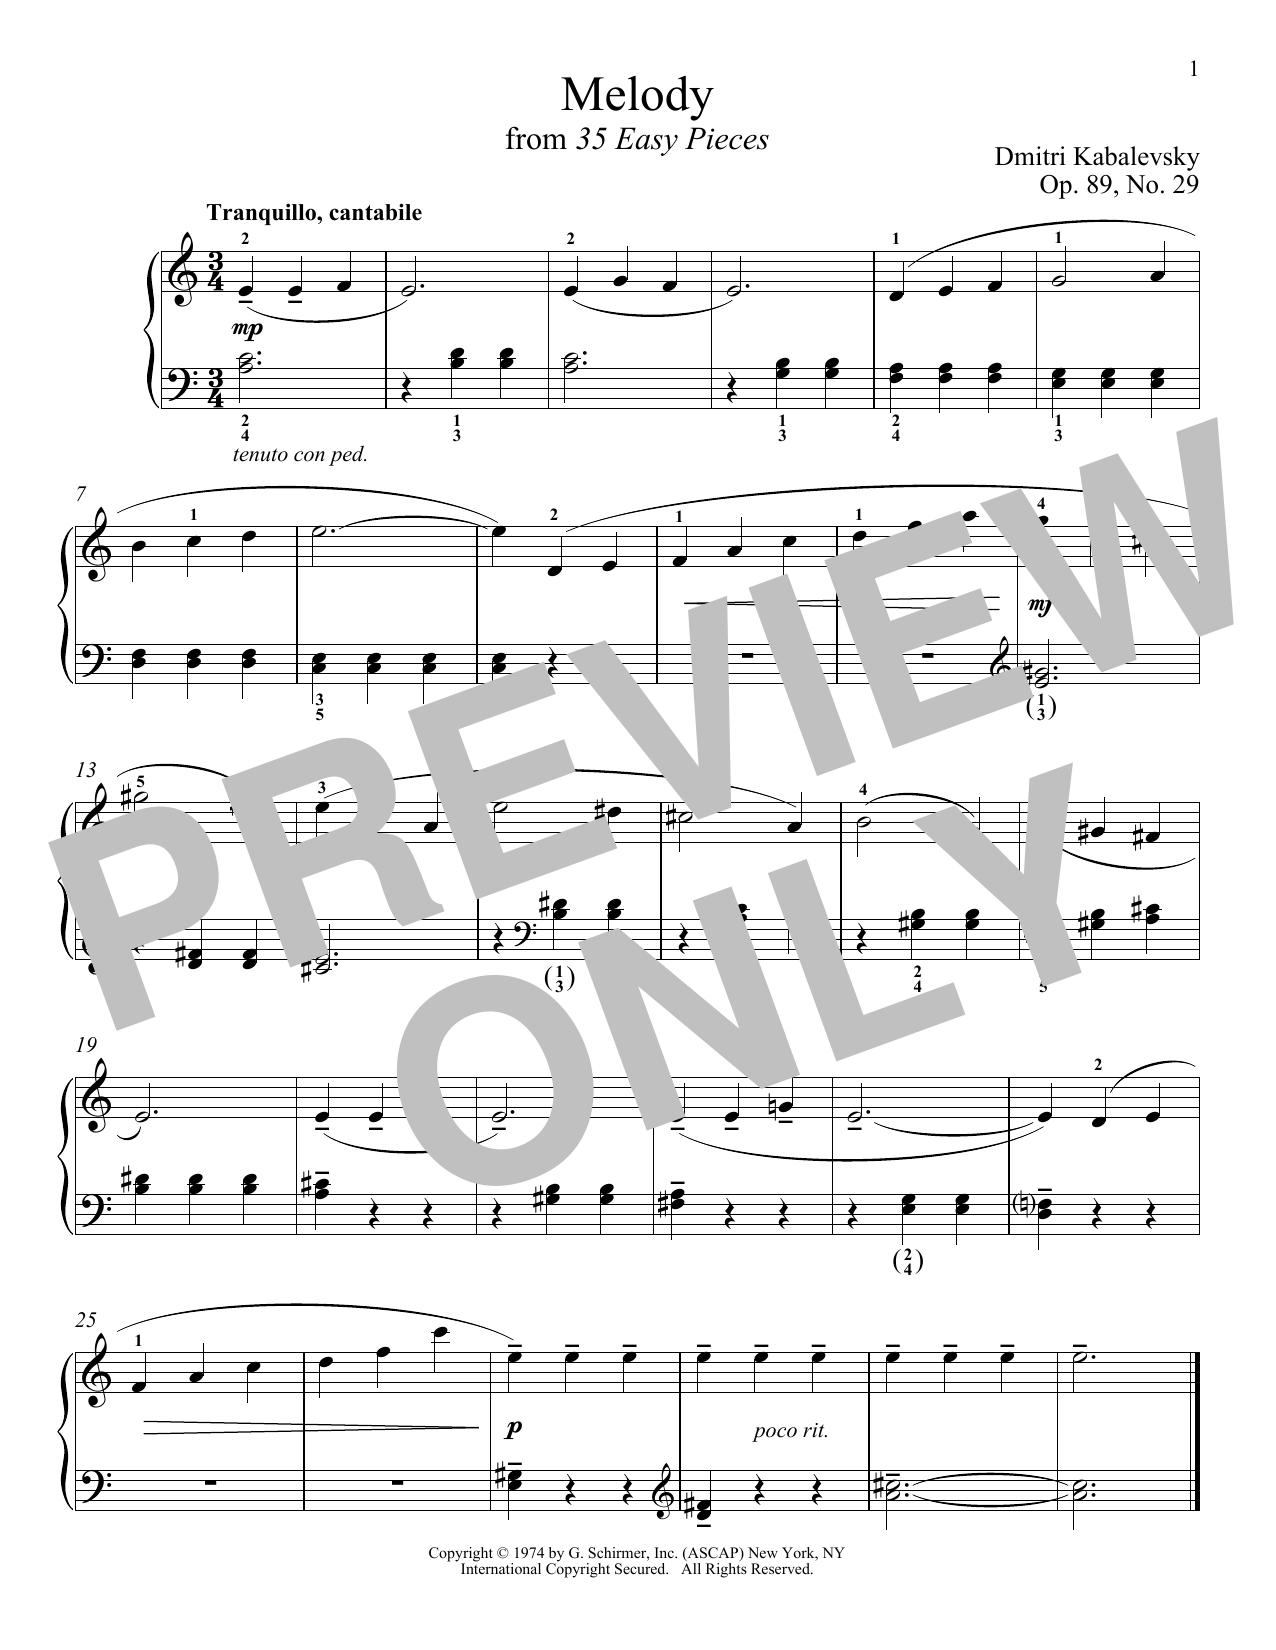 Dmitri Kabalevsky Melody, Op. 89, No. 29 sheet music notes and chords. Download Printable PDF.